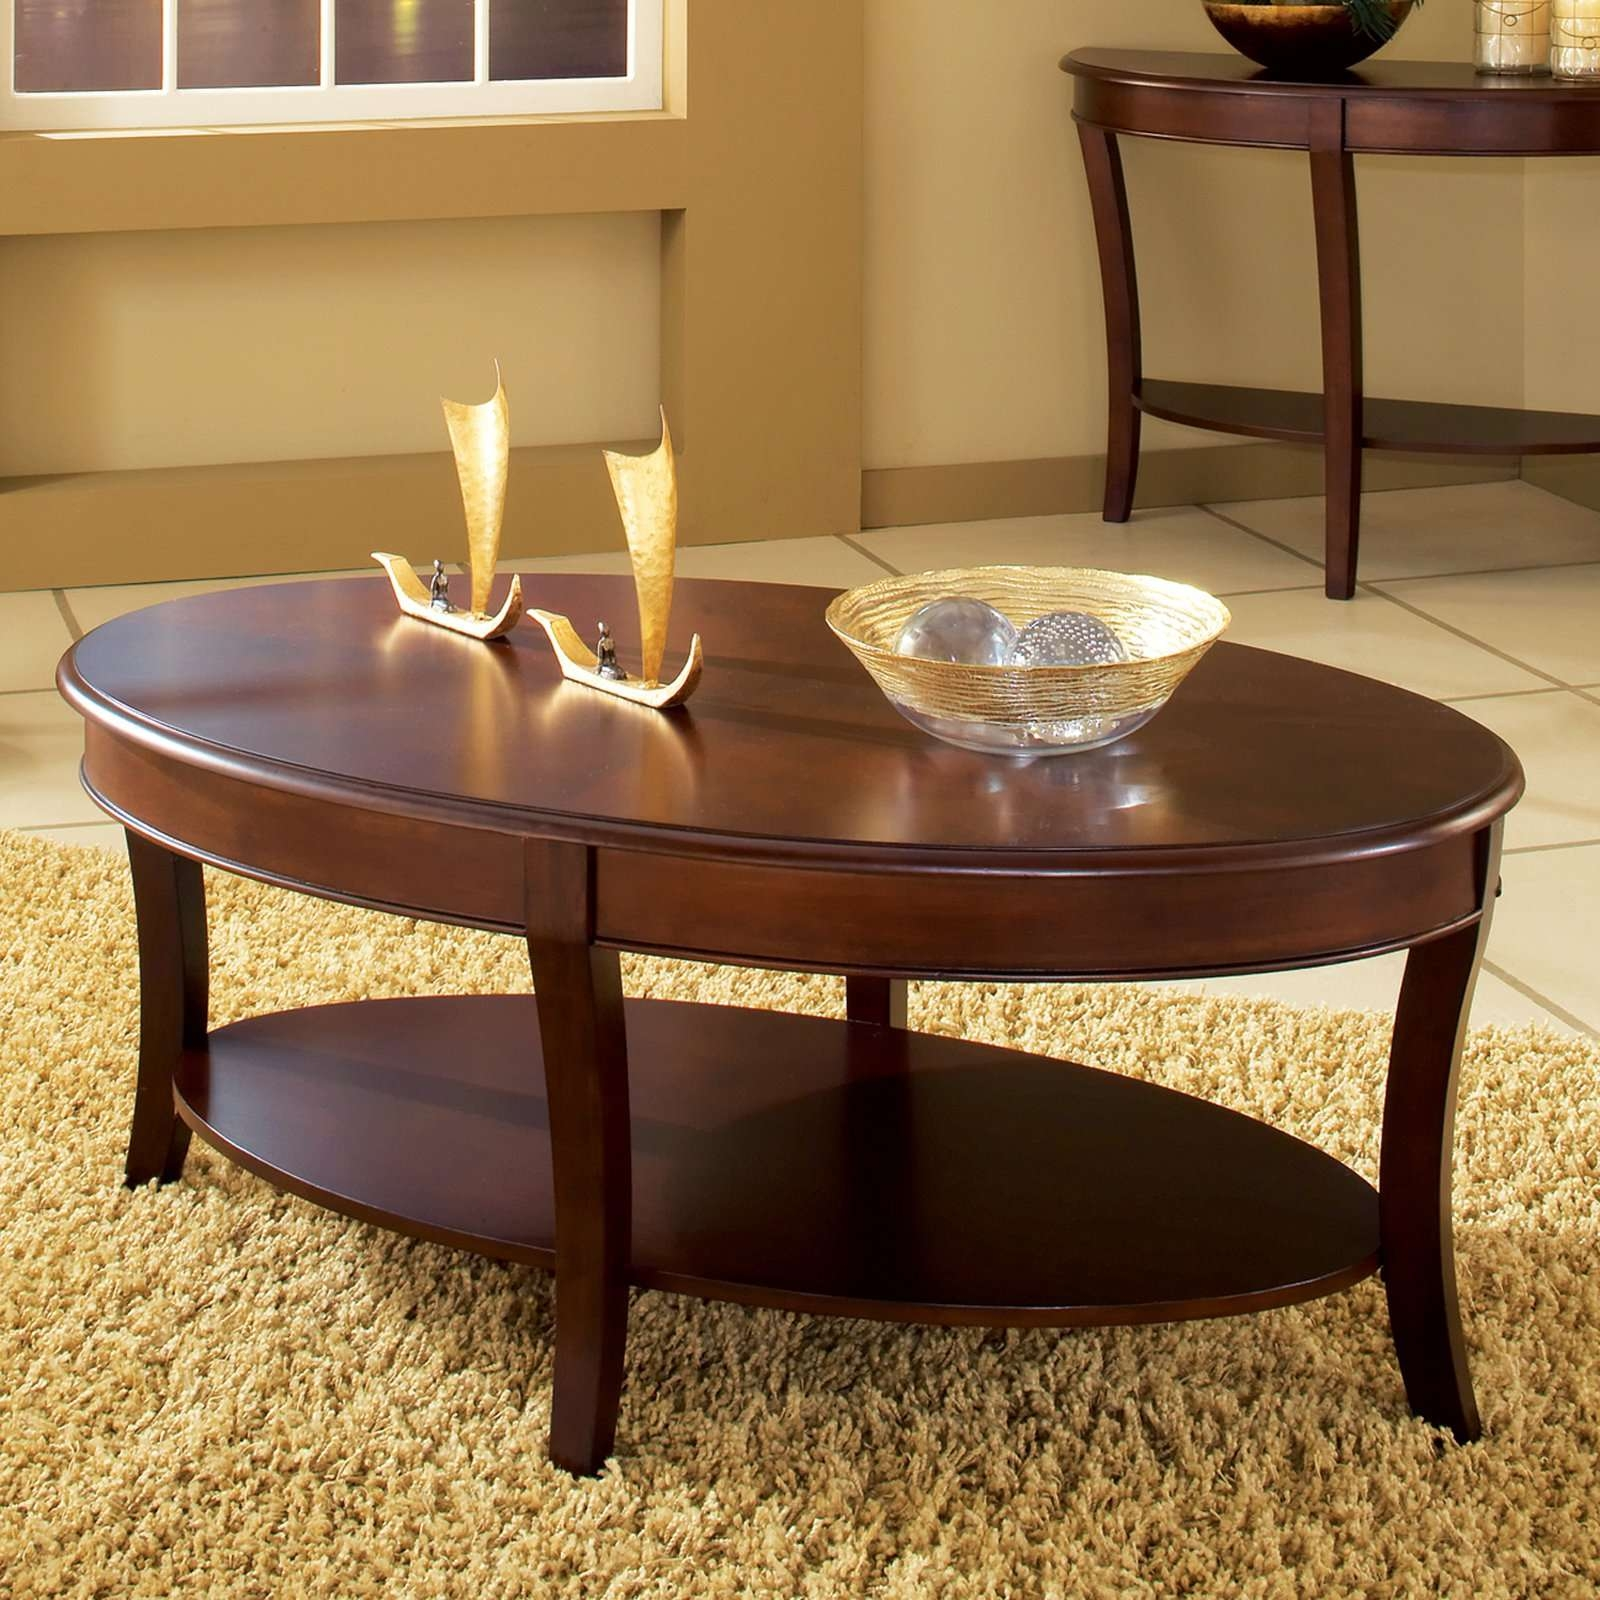 Widely Used Oval Wood Coffee Tables Intended For Steve Silver Troy Oval Cherry Wood Coffee Table – Walmart (View 10 of 20)